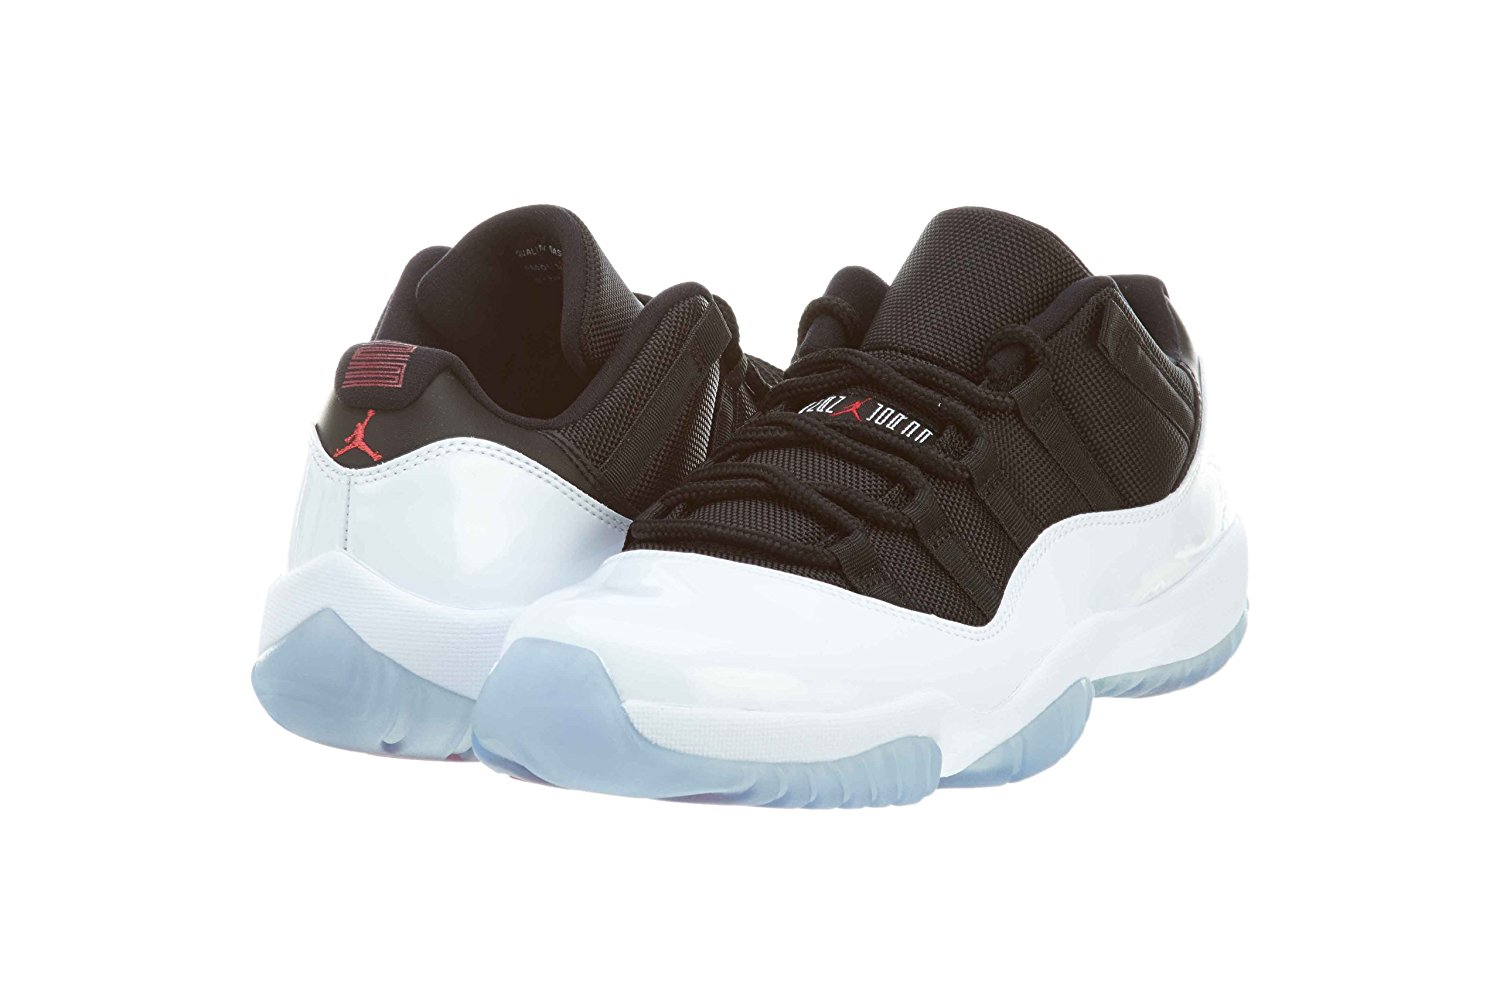 4bf5ab9ec52119 Air Jordan Retro 11 Low Men s Shoes Black Infrared-Pure Platinum 528895-023